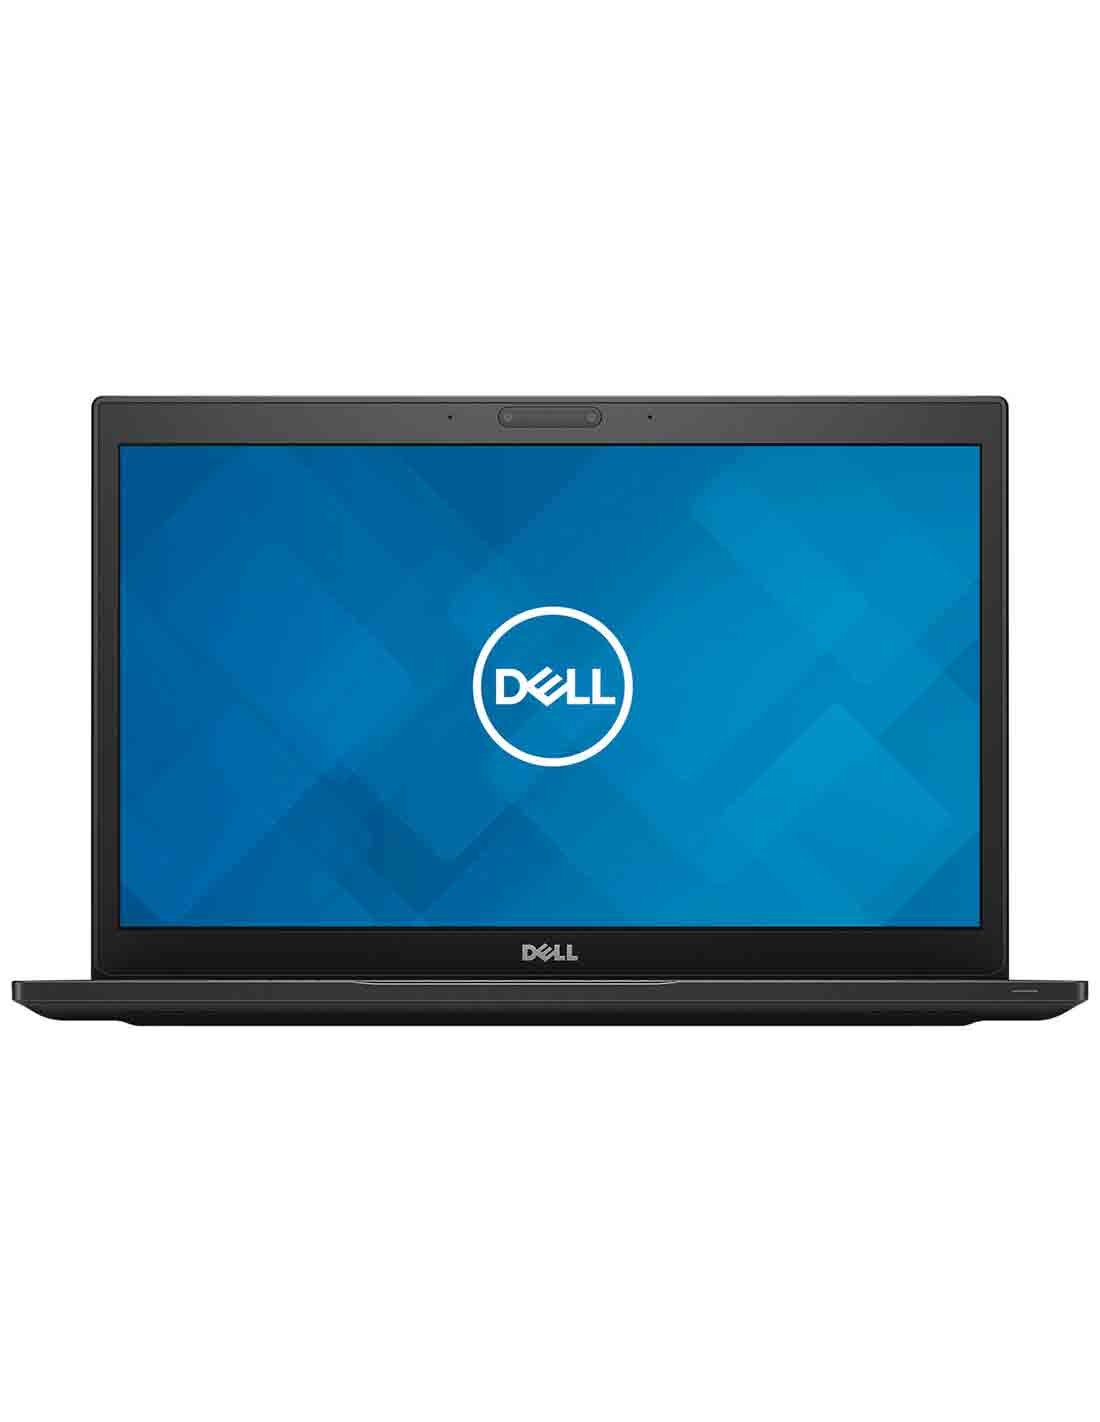 Dell Latitude 7490 Laptop images and photos in Dubai computer store